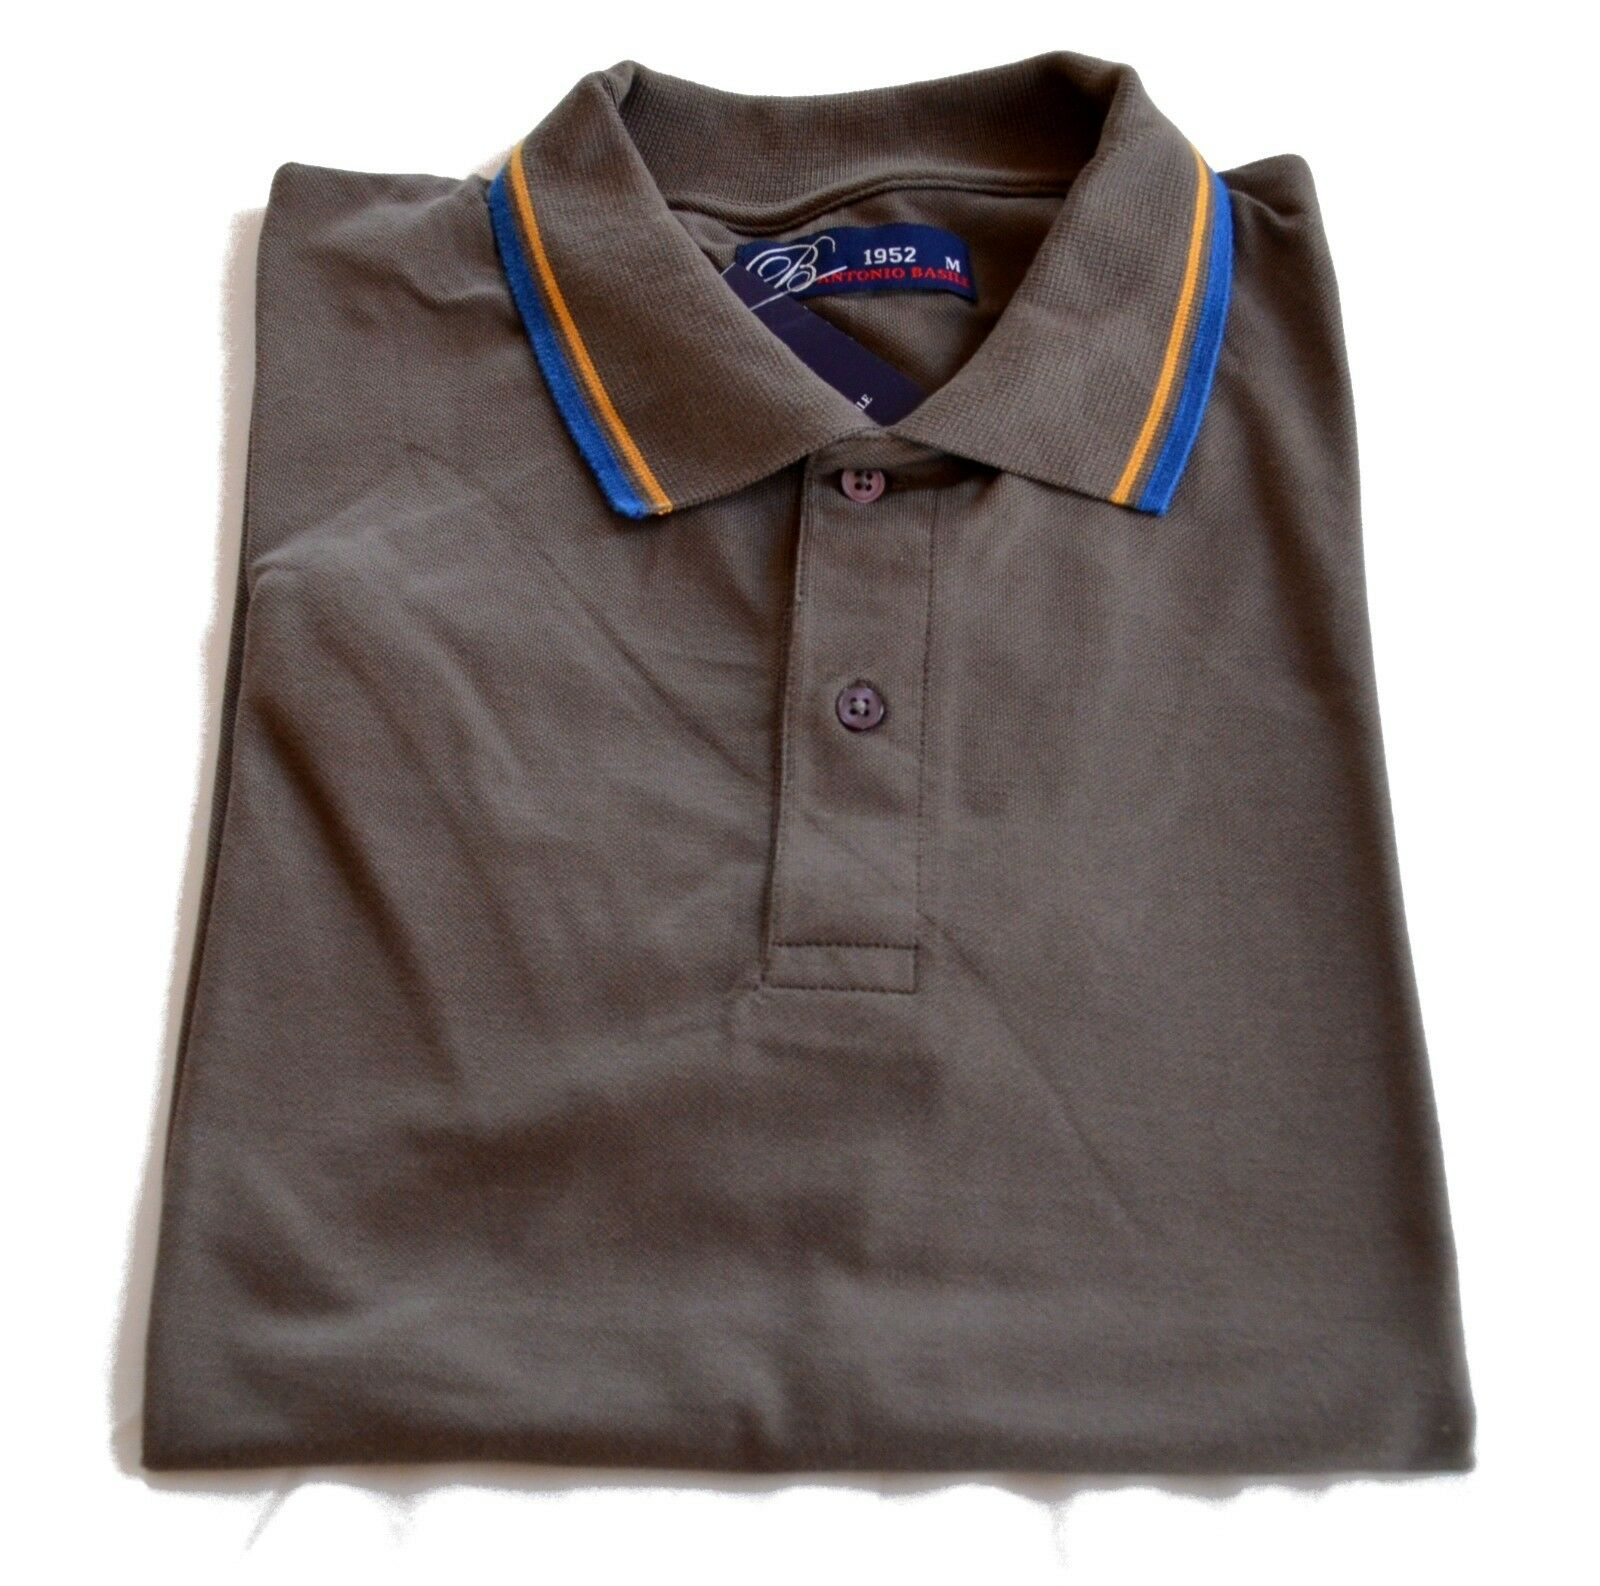 Polo Antonio Basile since 1952 Men 100% Cotton Styled in  T-shirt Nwt brown